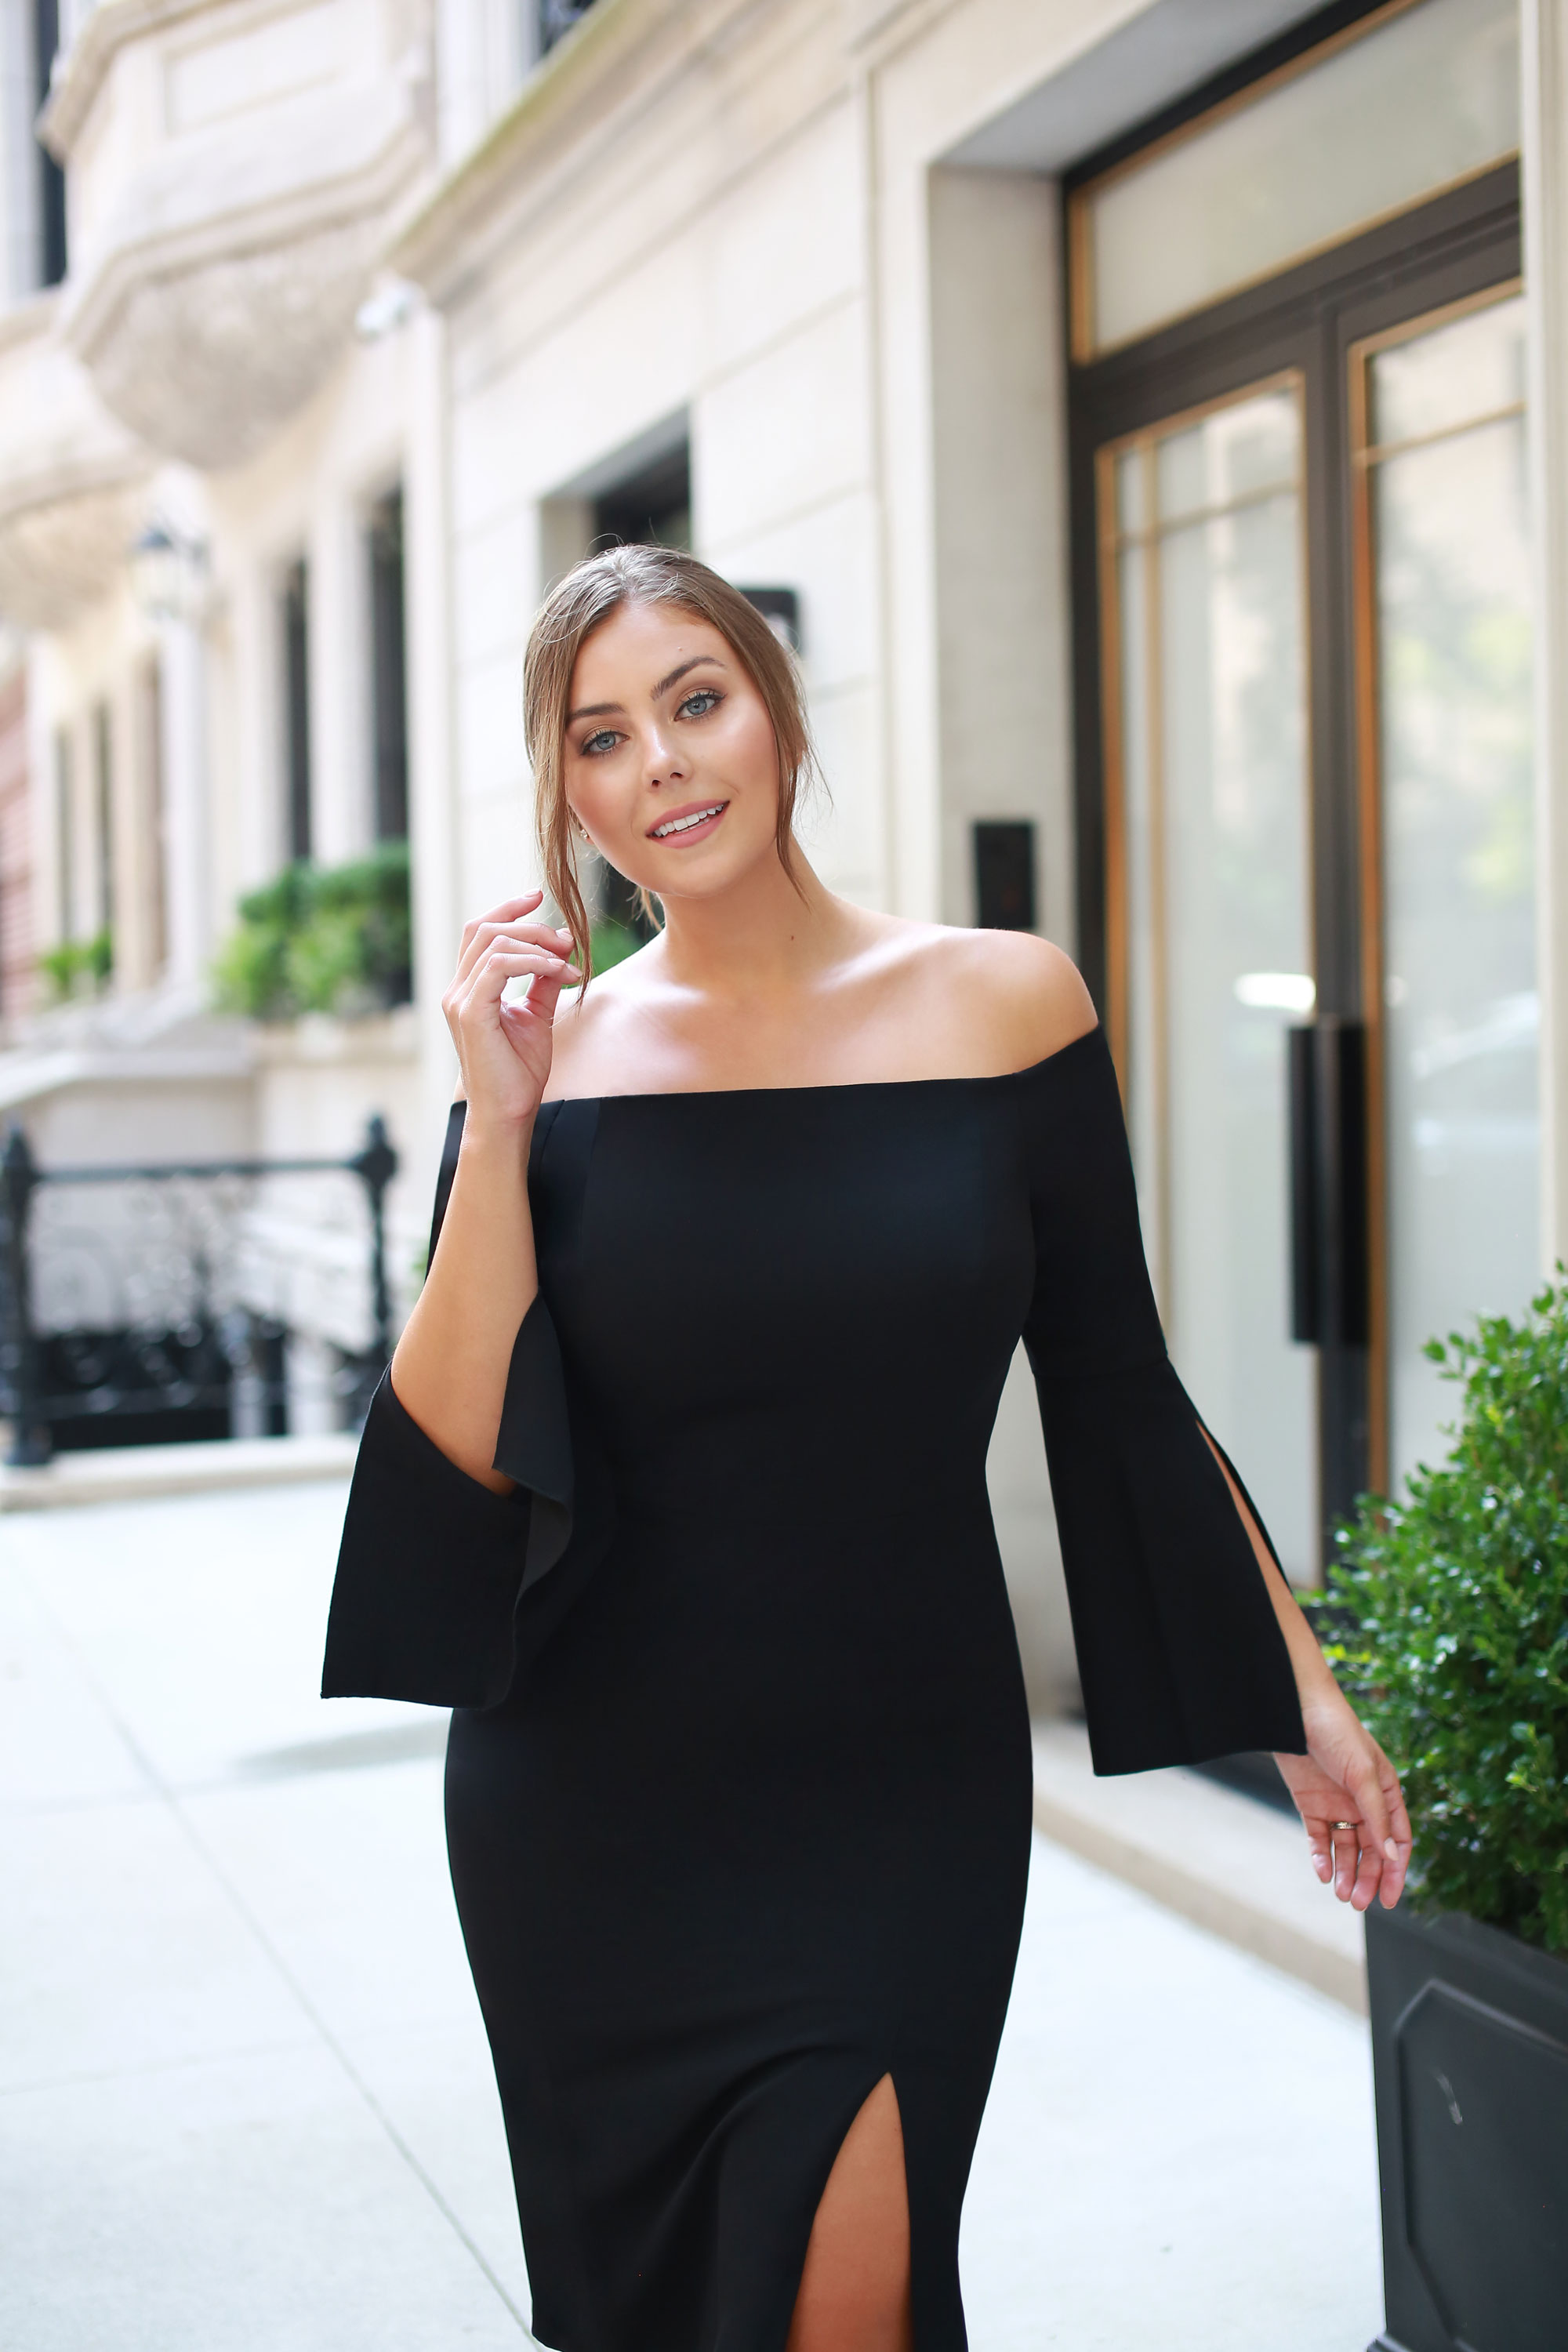 1. Anniversary Celebration - Say it with a pair of statement statement sleeves! The classic and sexy off-the-shoulder cut gets an upgrade in our Liza Midi with elbow-slit sleeves. An elegant take on an LBD is the perfect way to cheers the years of love.